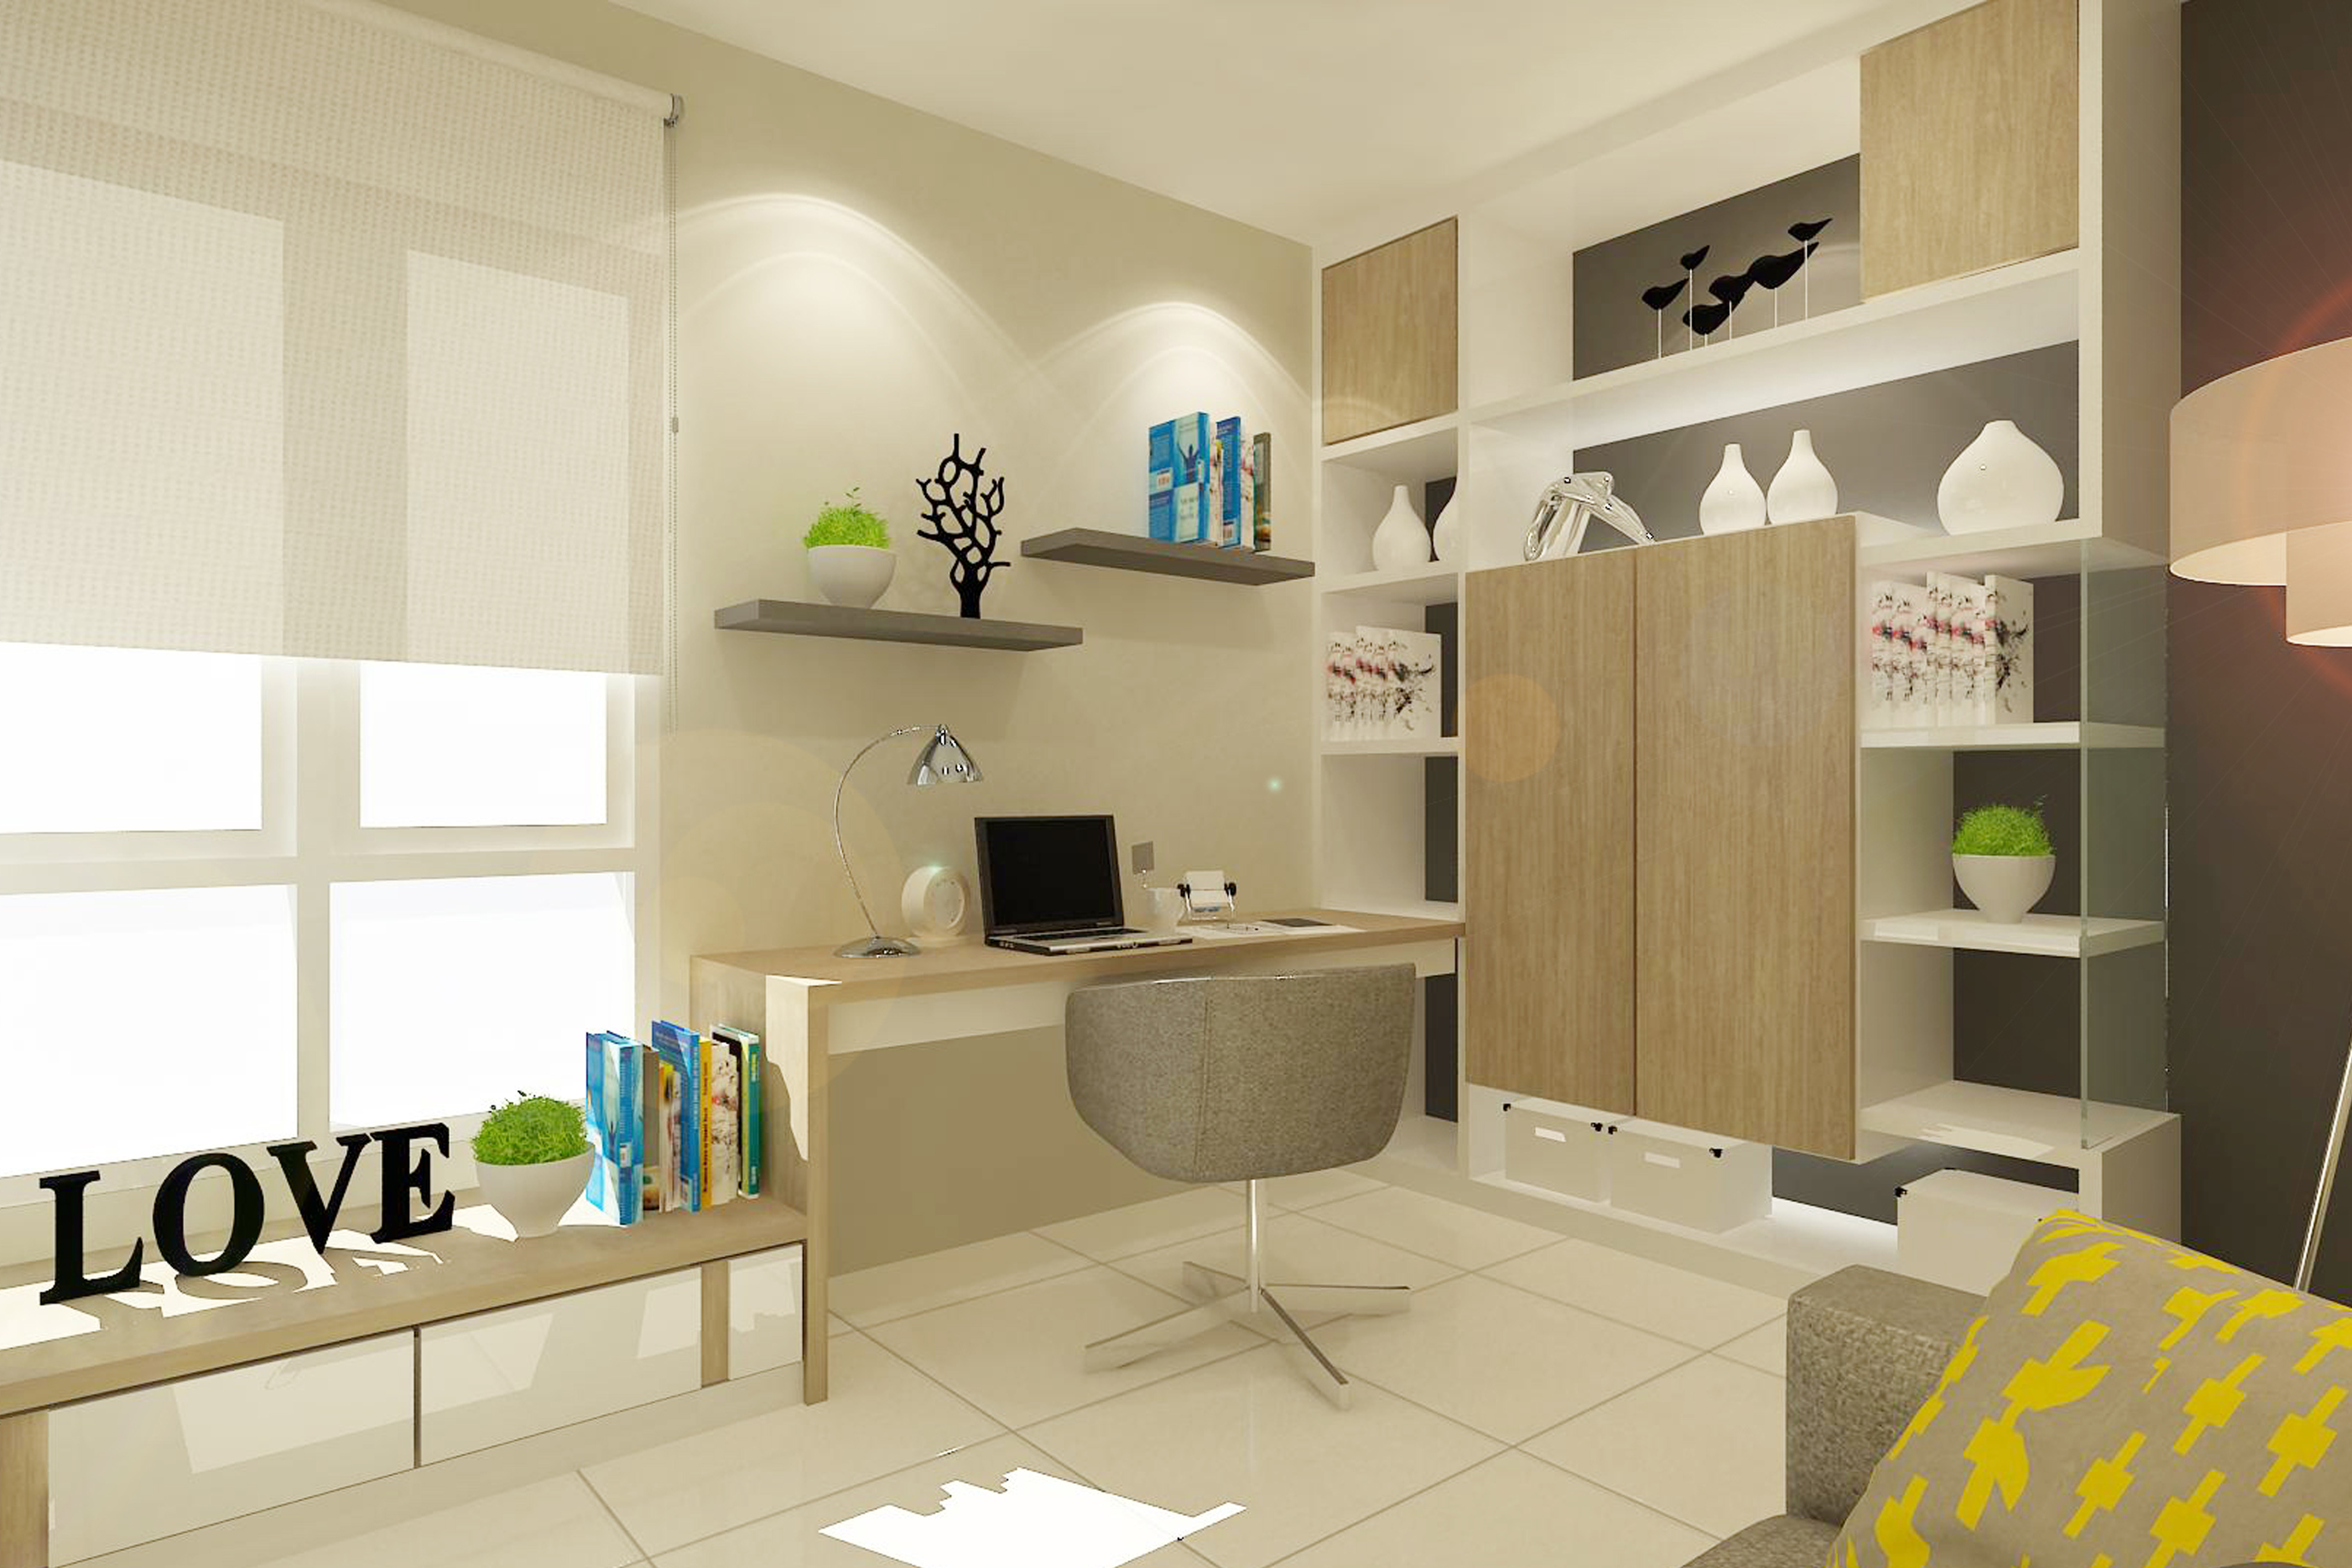 Study room in home design sdn bhd for Household contact study design